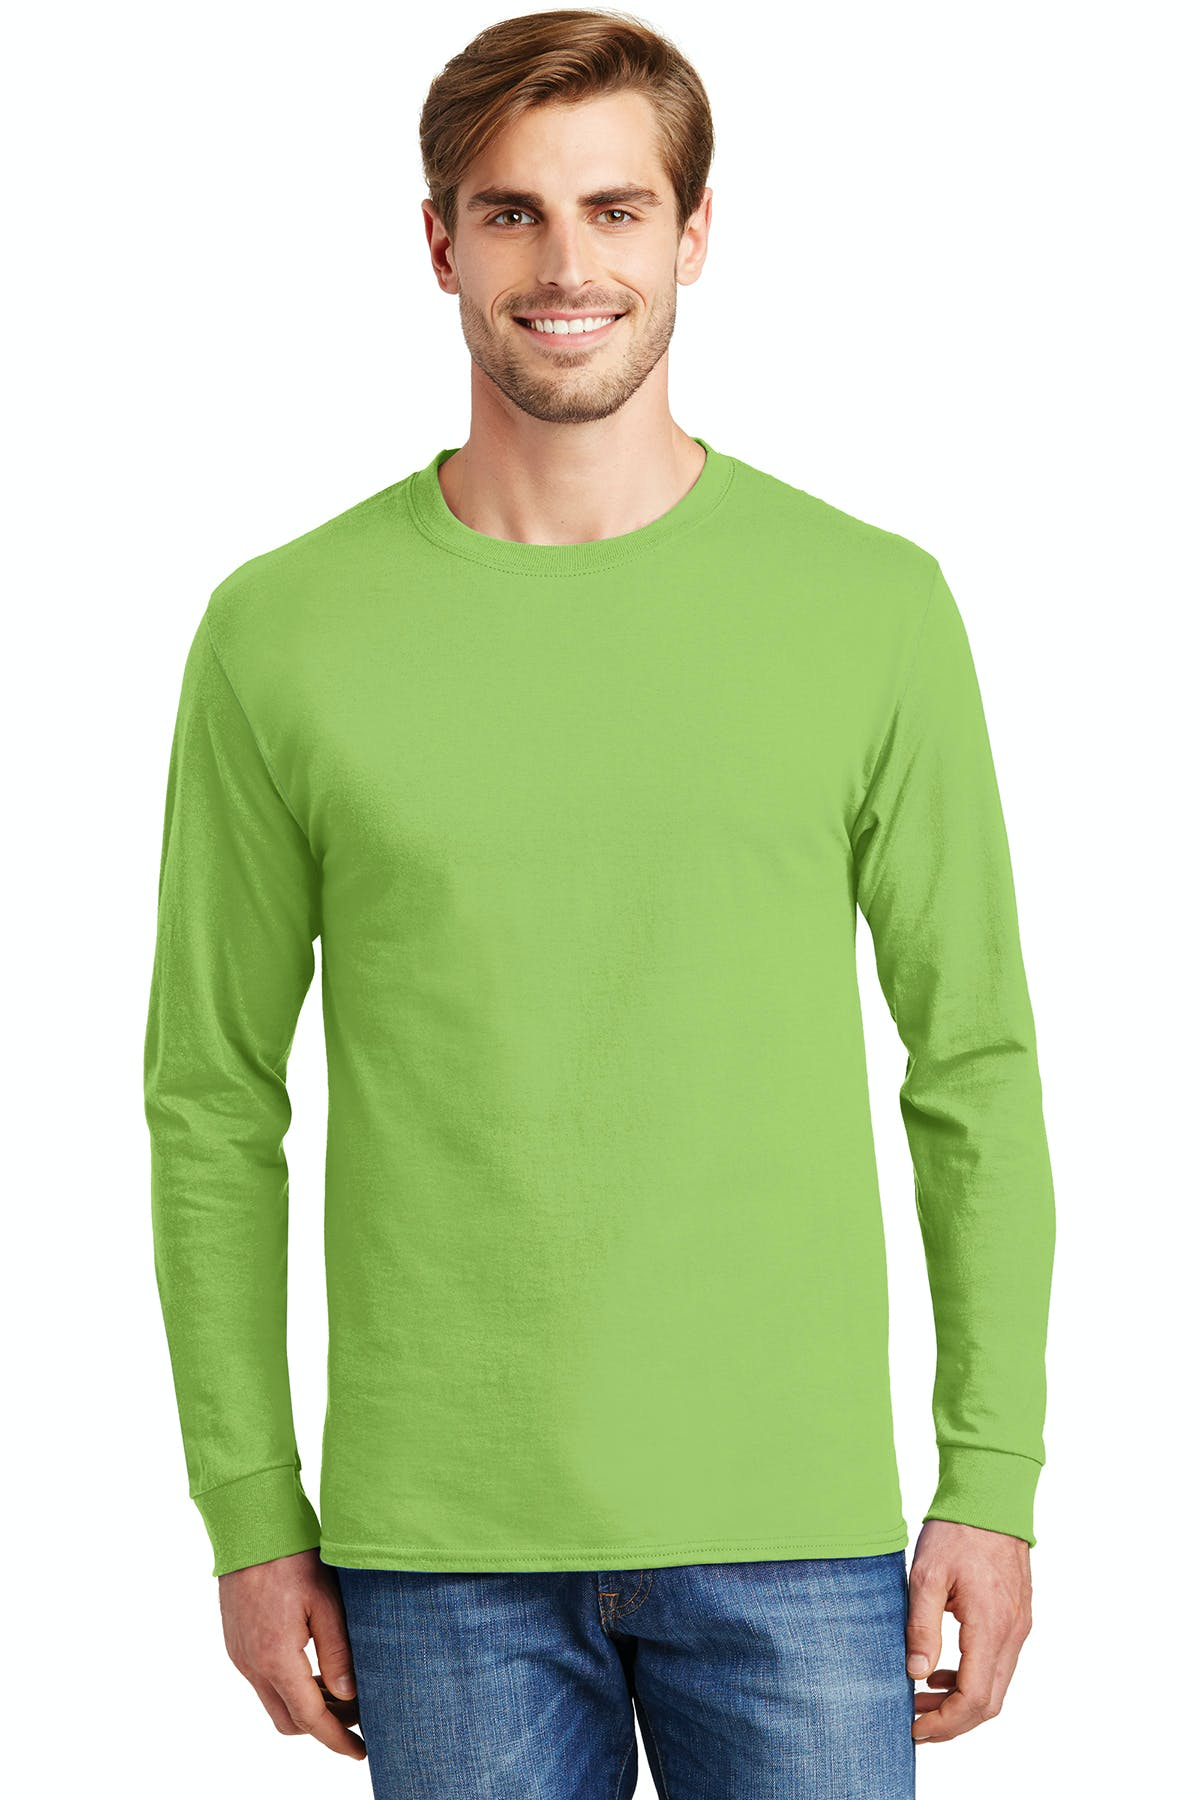 Hanes® - Tagless® 100% Cotton Long Sleeve T-Shirt - sold by PRINT CITY GRAPHICS, INC